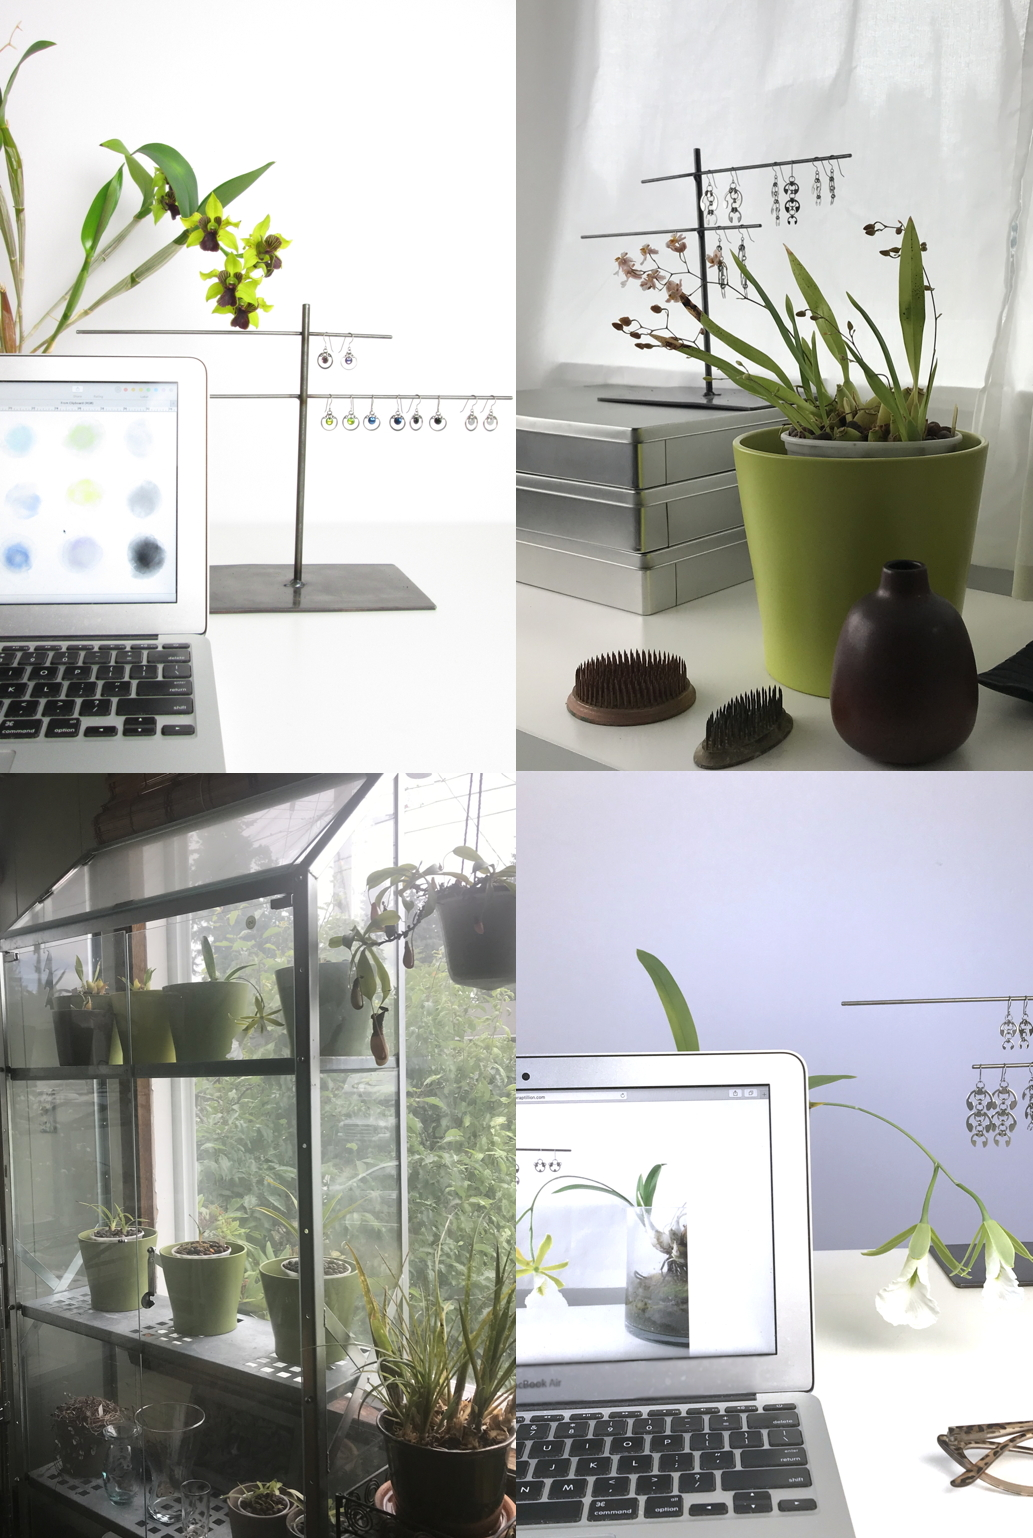 Compiled image of 4 photos featuring Dendrobium 'Green Flash,' Oncidium 'Tsiku Marguerite', and Encyclia mariae in Wraptillion's studio workspace, with indoor plant shelves where the orchids grow.